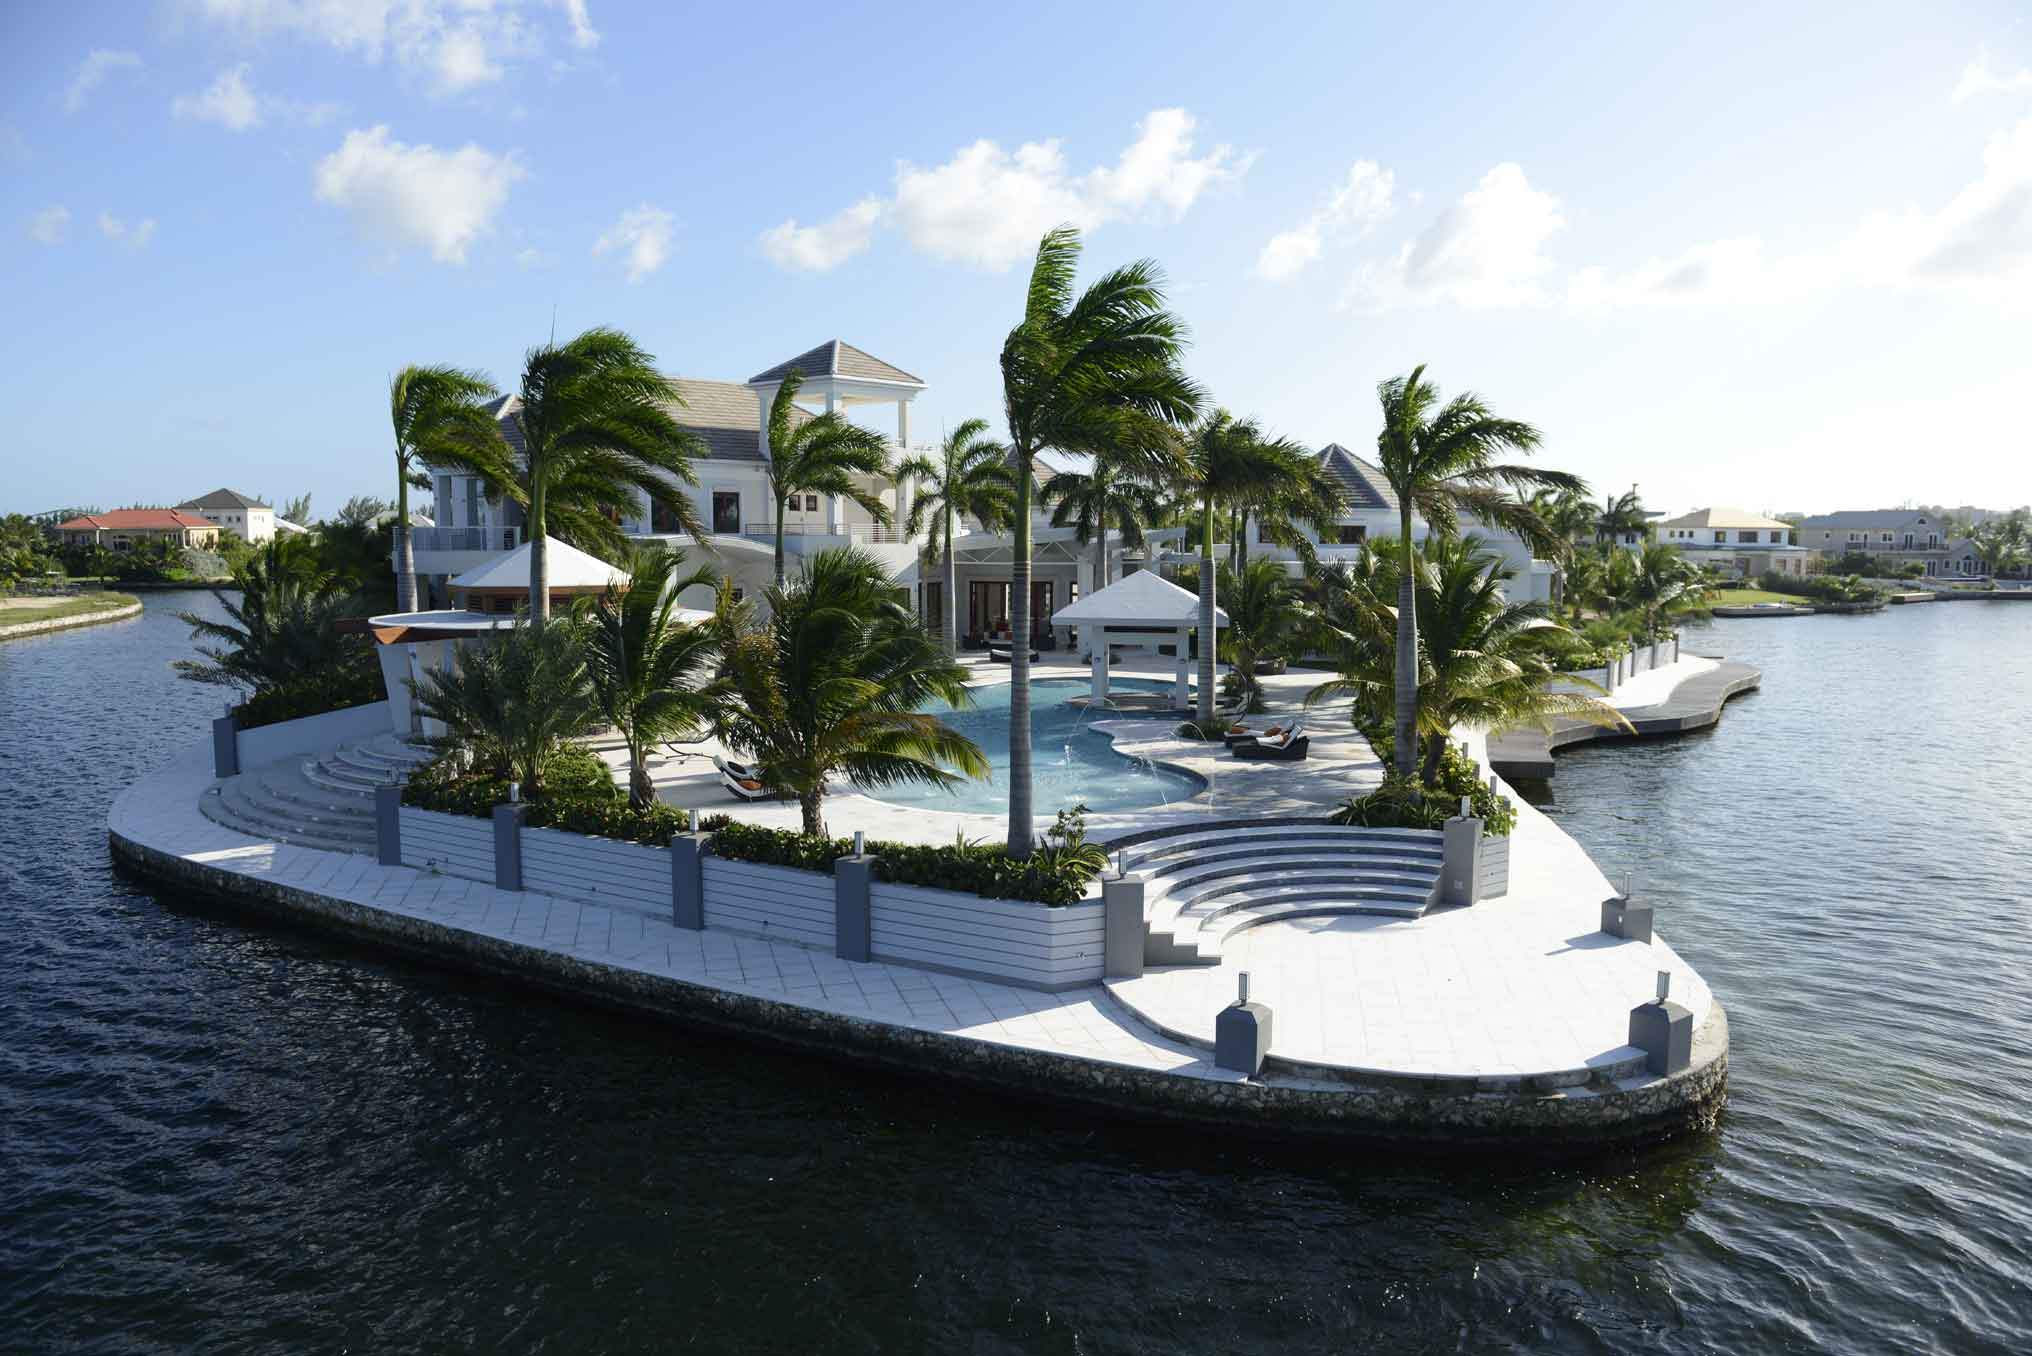 This Cayman Islands estate features a high-tech security system throughout the property